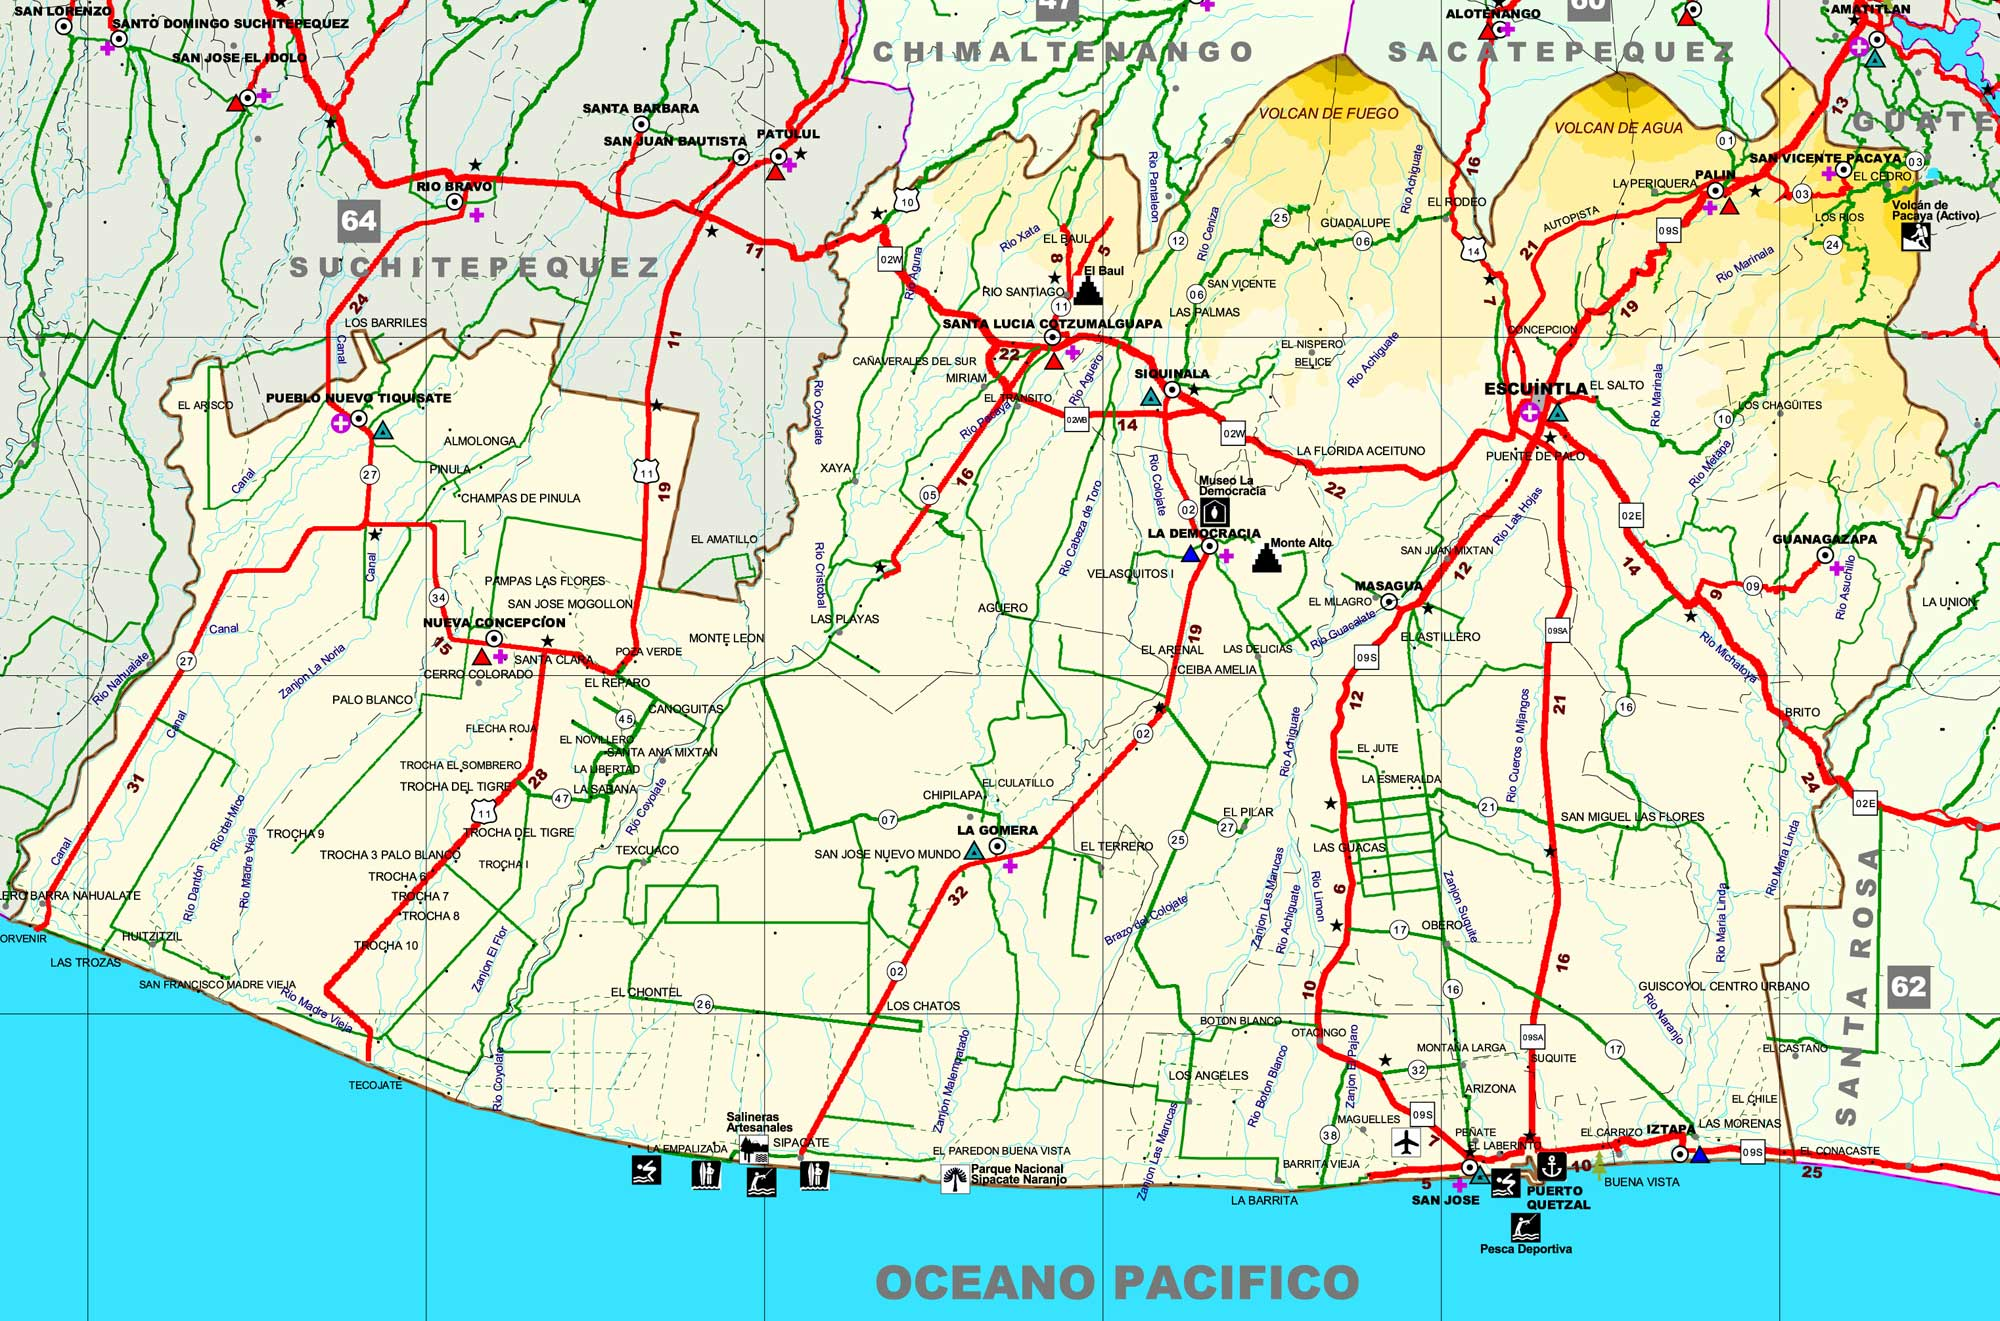 map central mexico with Mapa De Escuintla on Bp Confirms Sale Of Forties Pipeline To Ineos further Peru Pictures Altiplano likewise La Reunion also WrBr Embarcadero Nativitas Xochimilco Mexico City Mexico furthermore Mena House.